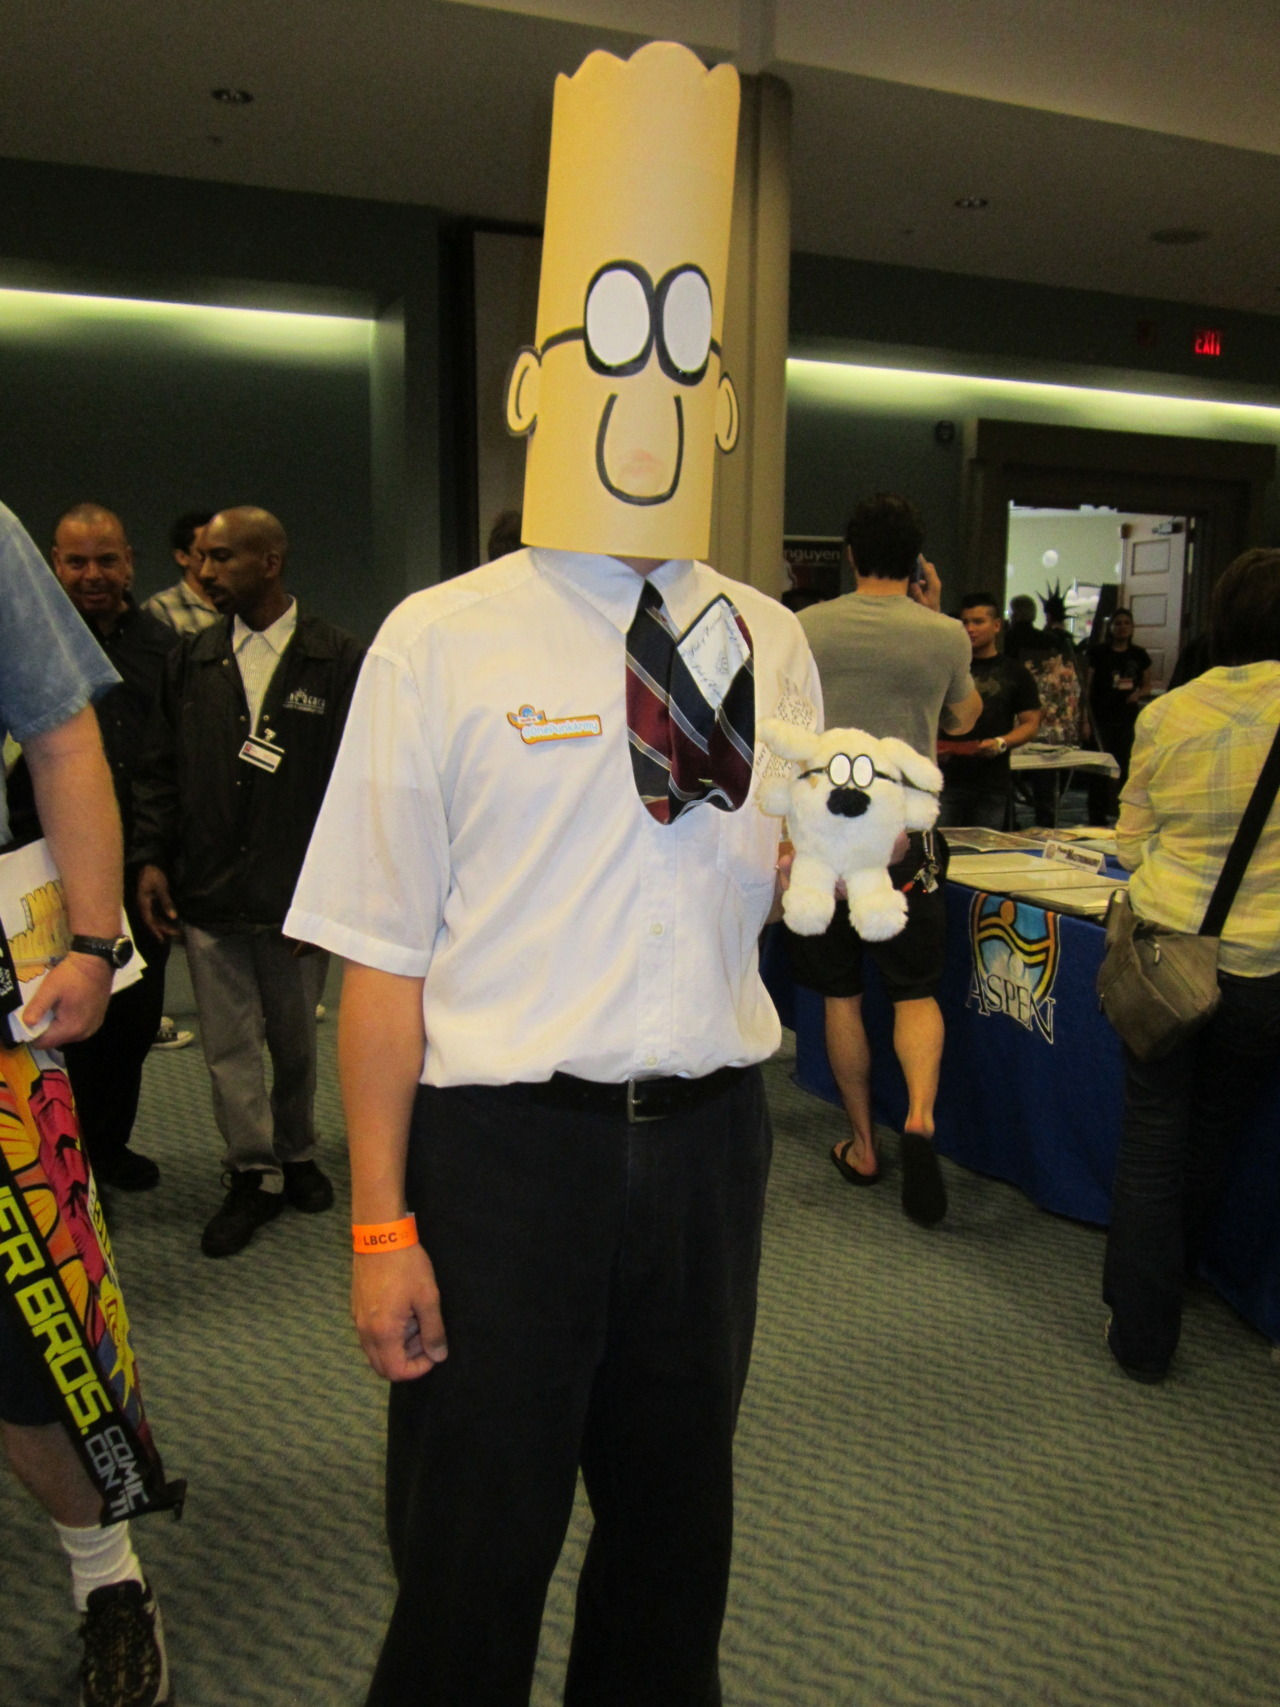 Dilbert cosplay spotted at Long Beach Comic Expo.